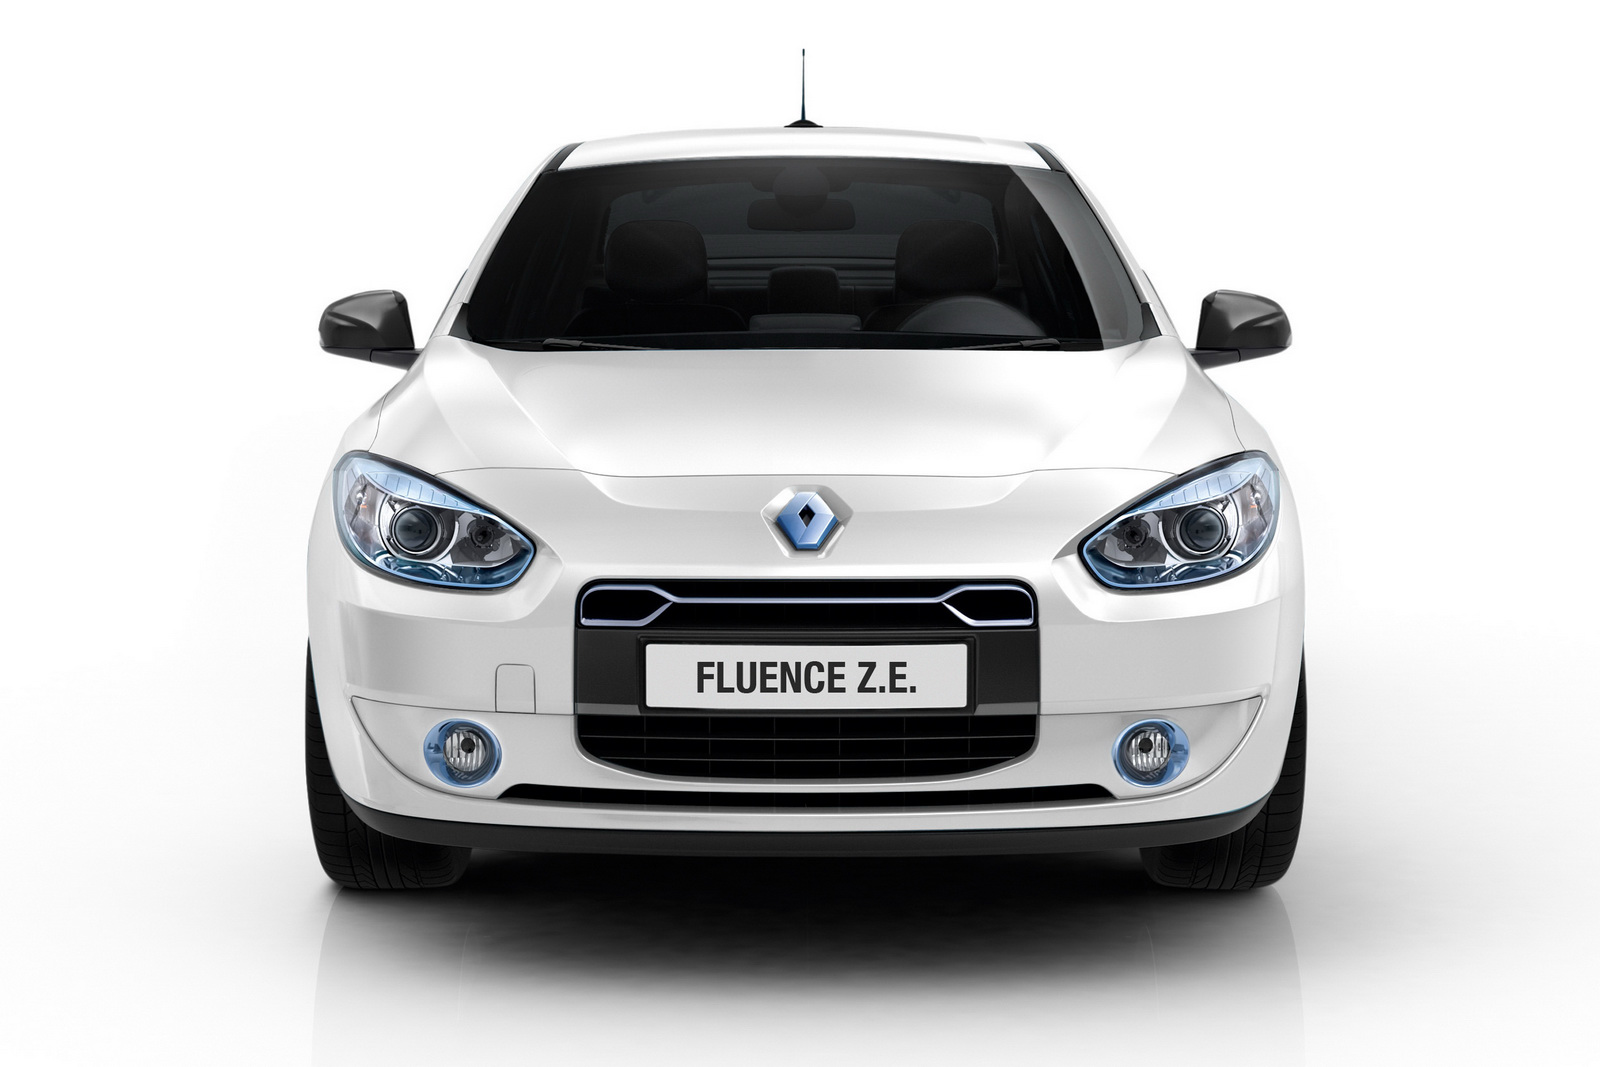 Renault Fluence ZE Fluence Z.E. Saloon Car to be Launched by Renault with Revised Price Range